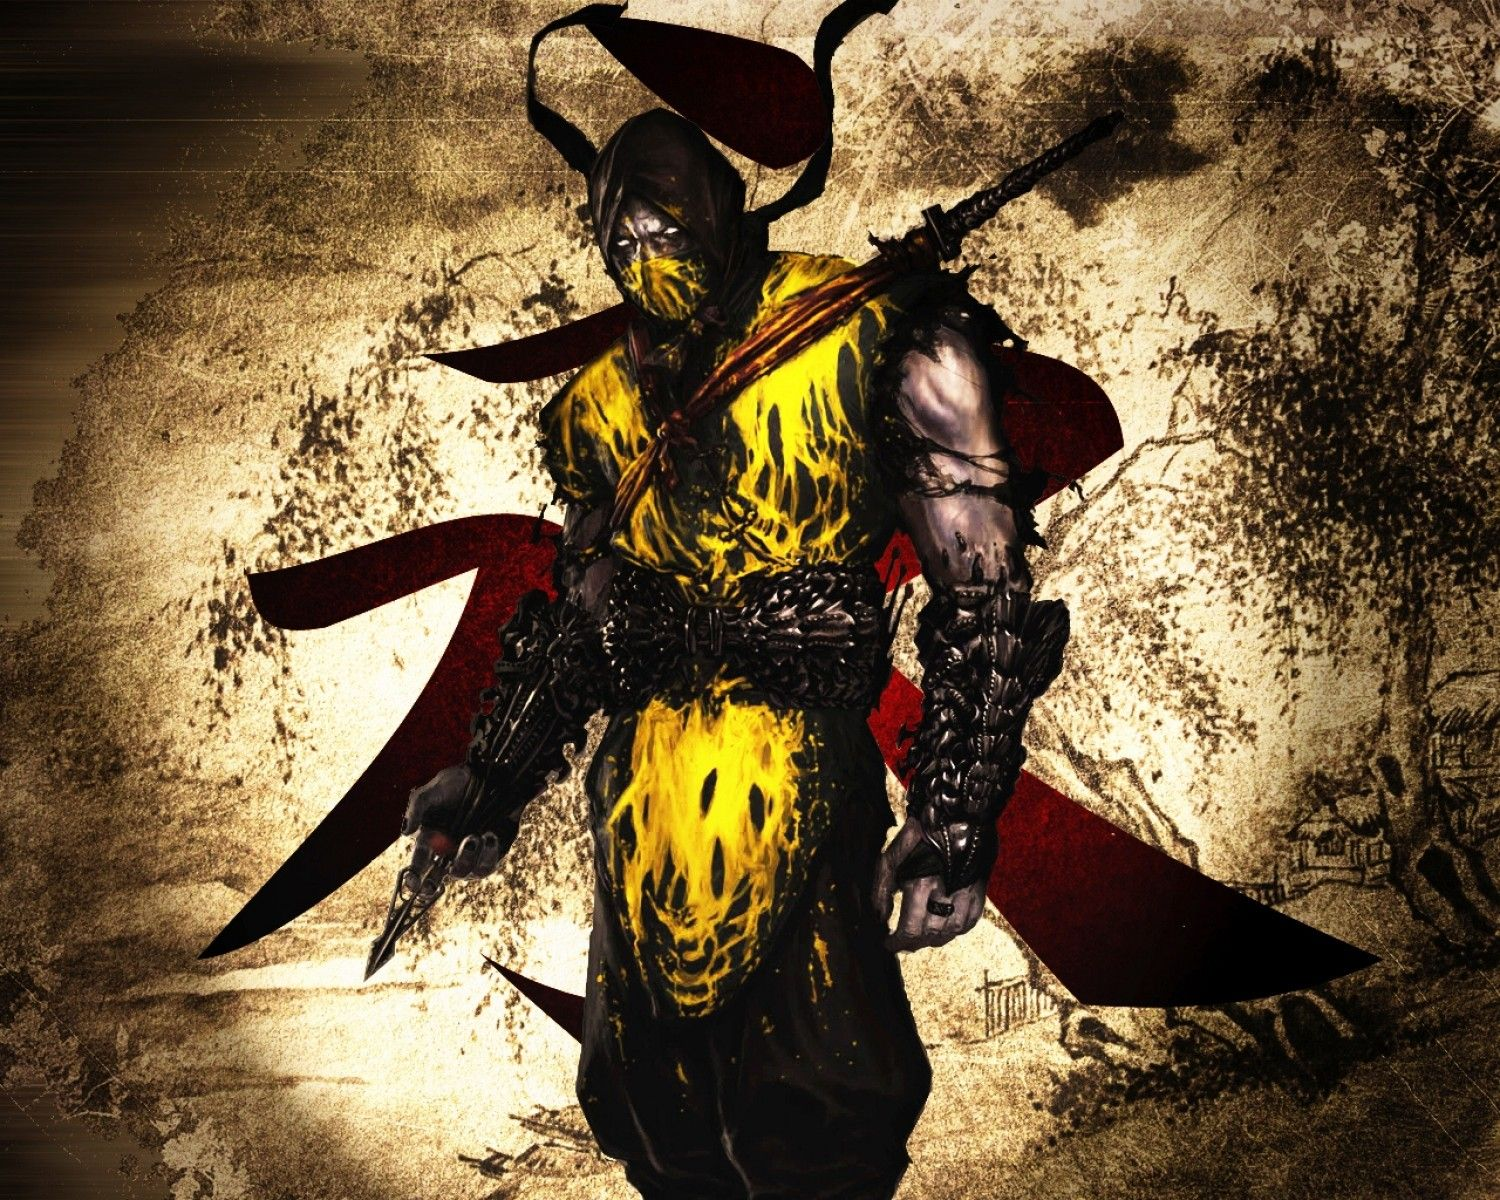 Mortal Kombat Scorpion Wallpaper For Iphone Rtc Scorpion Mortal Kombat Mortal Kombat Mortal Kombat Memes